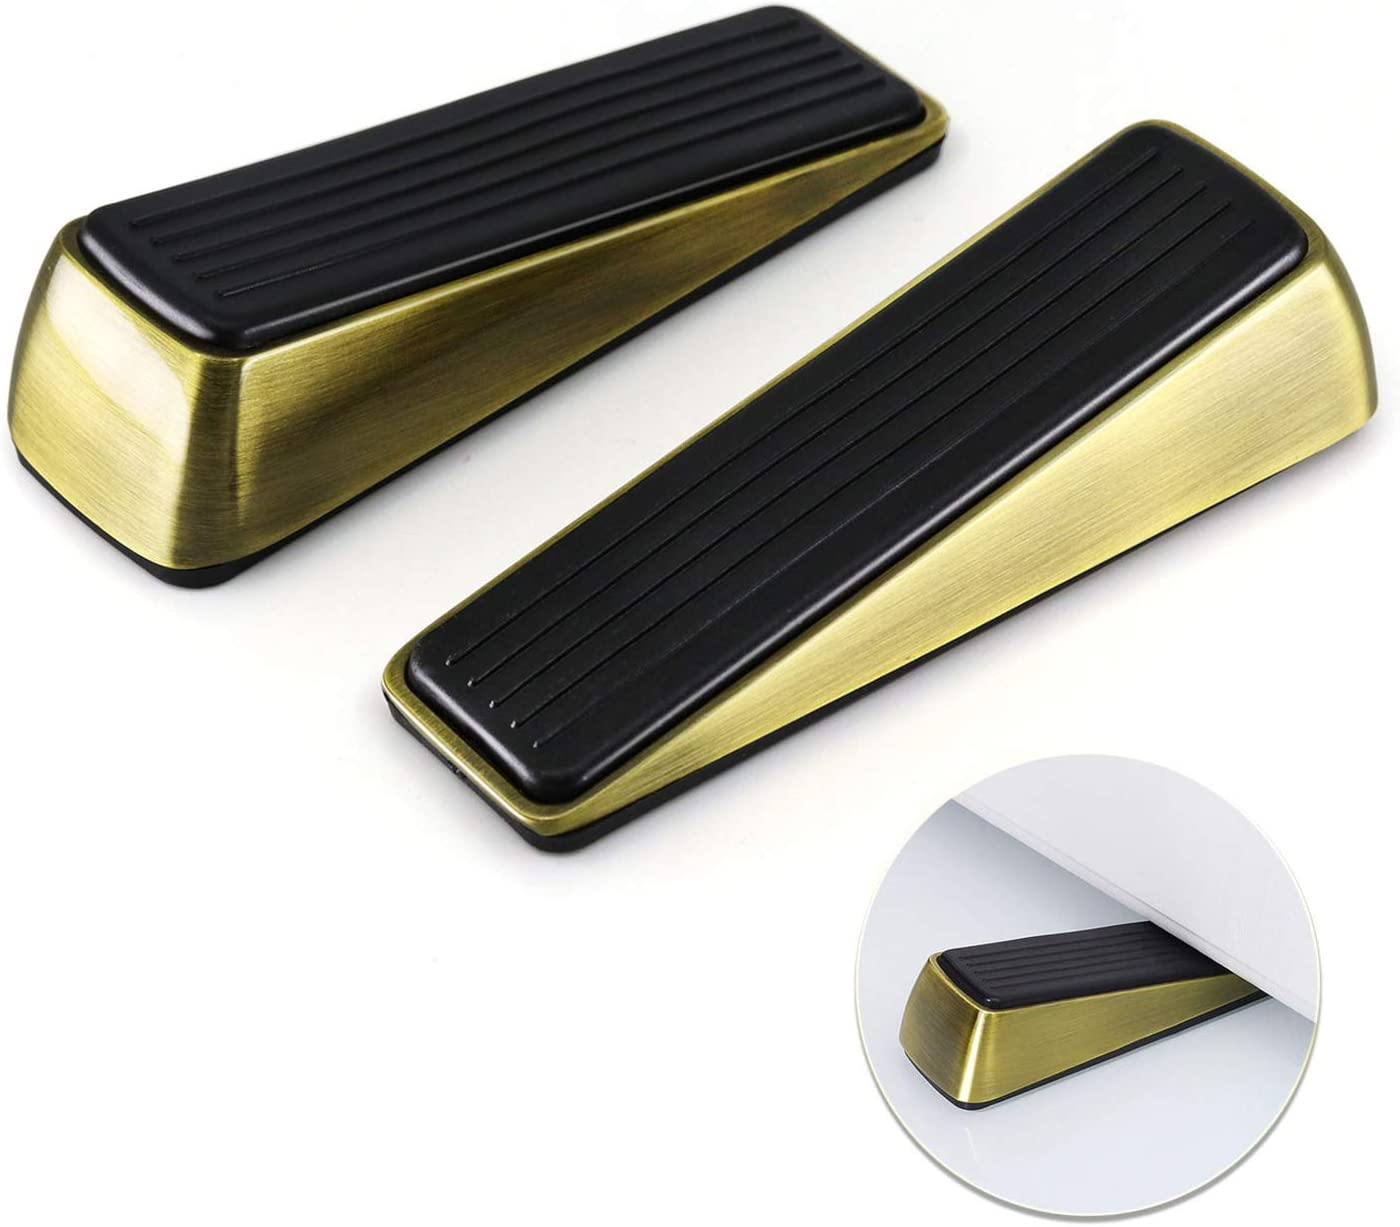 2 Pack Door Stop - Heavy Duty Door Stopper - Wedge Holds Doors Firmly and Doesn't Budge - Made of Rubber and Zinc Alloy, for Home Premium Door Stopper and Office, Works on All Door (Bronze Tone)